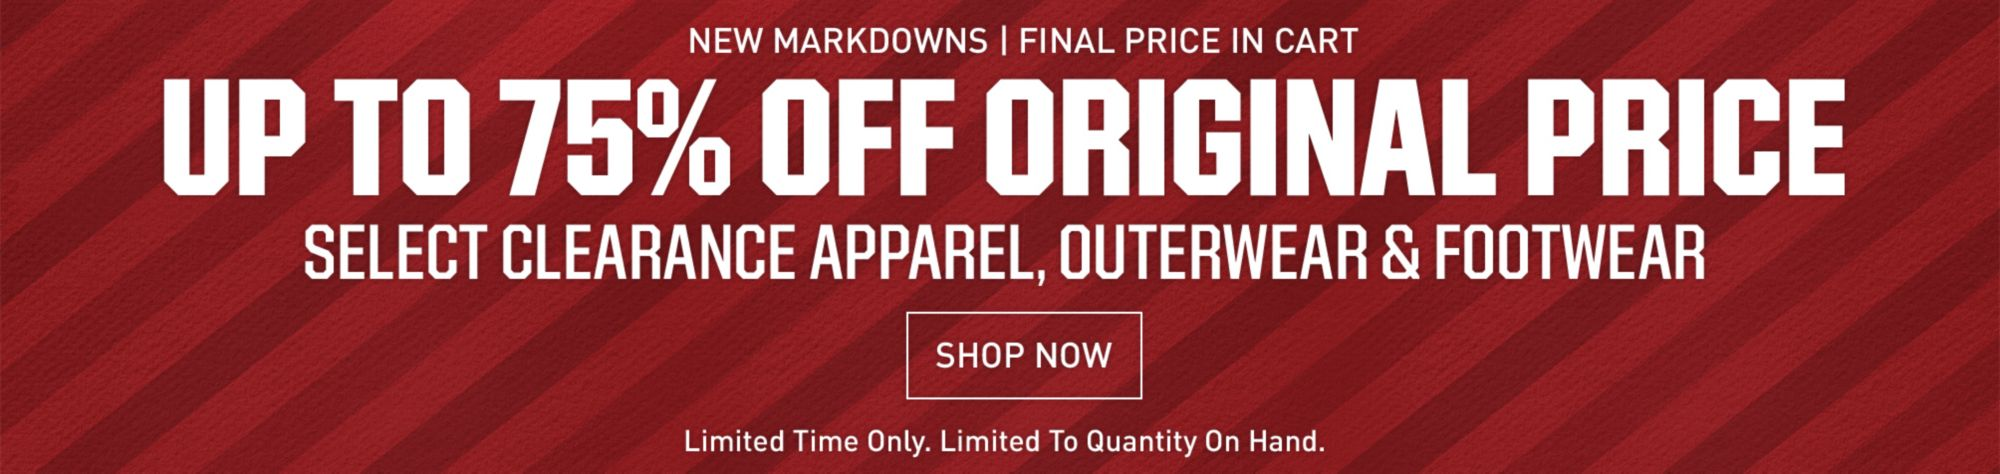 up to 75% off original price when you take an additional 10%-40% off select clearance